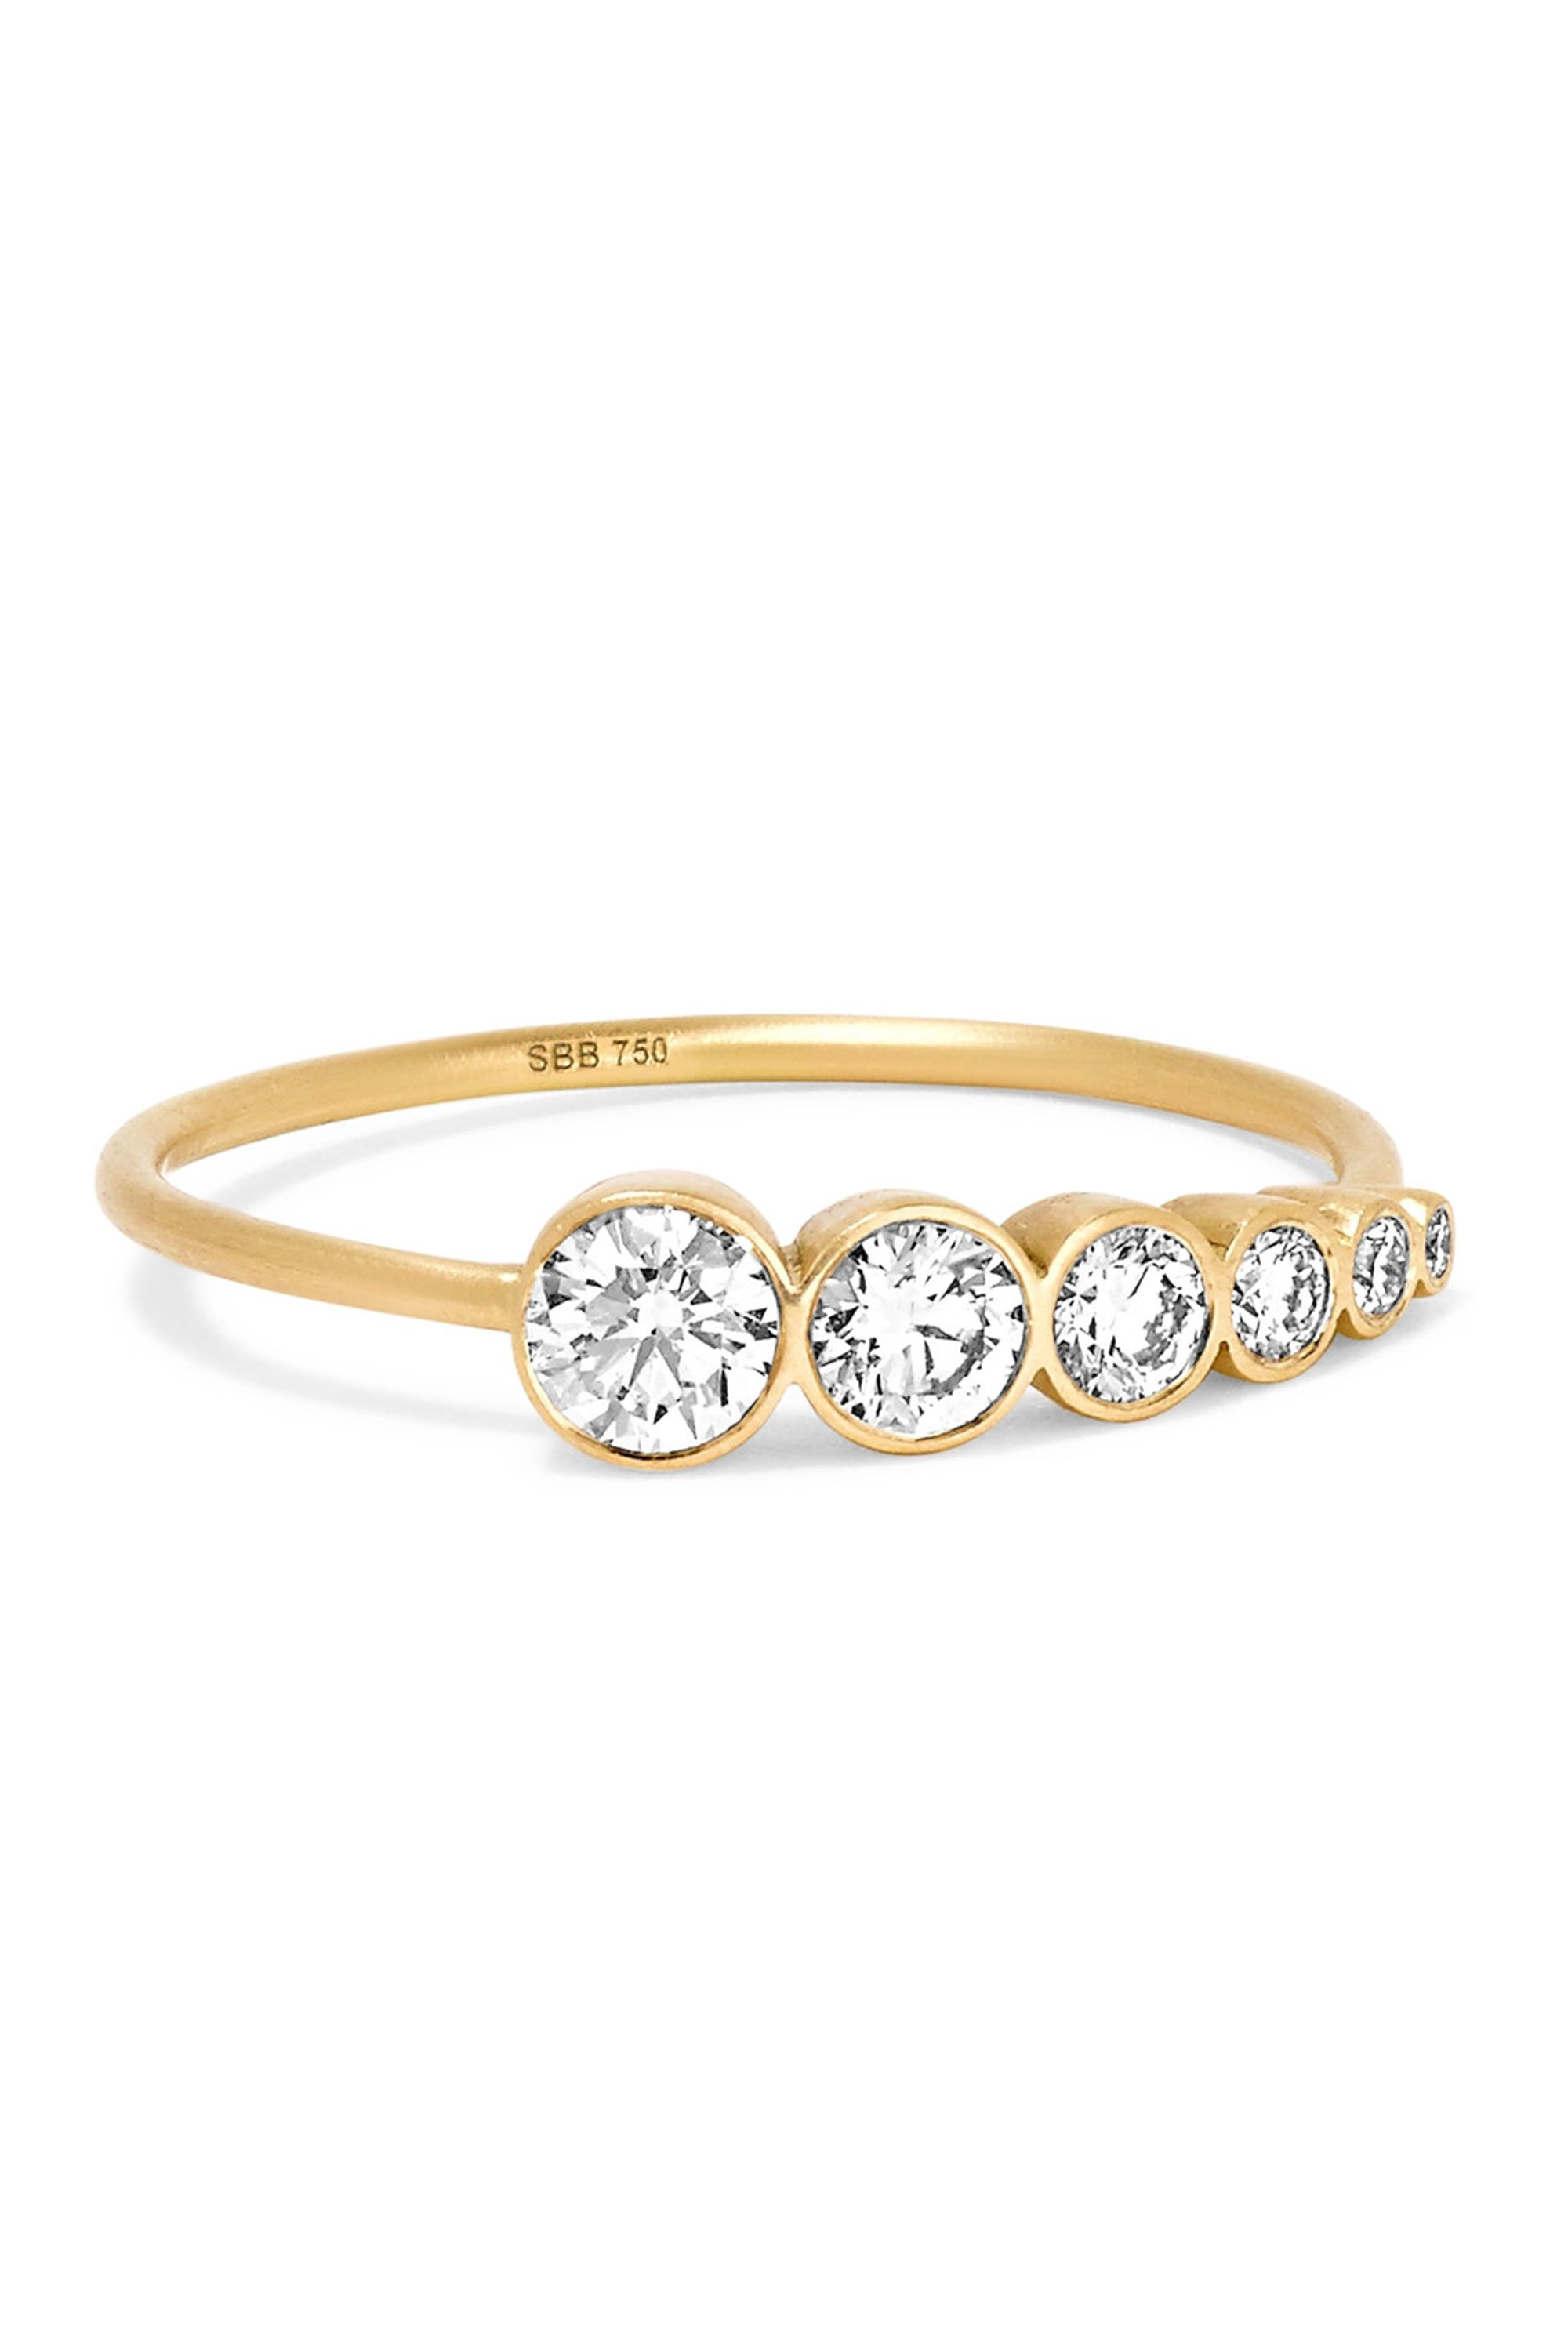 house s husar and white diamonds twist engagement fine diamond gold yellow ring style of two stone rings